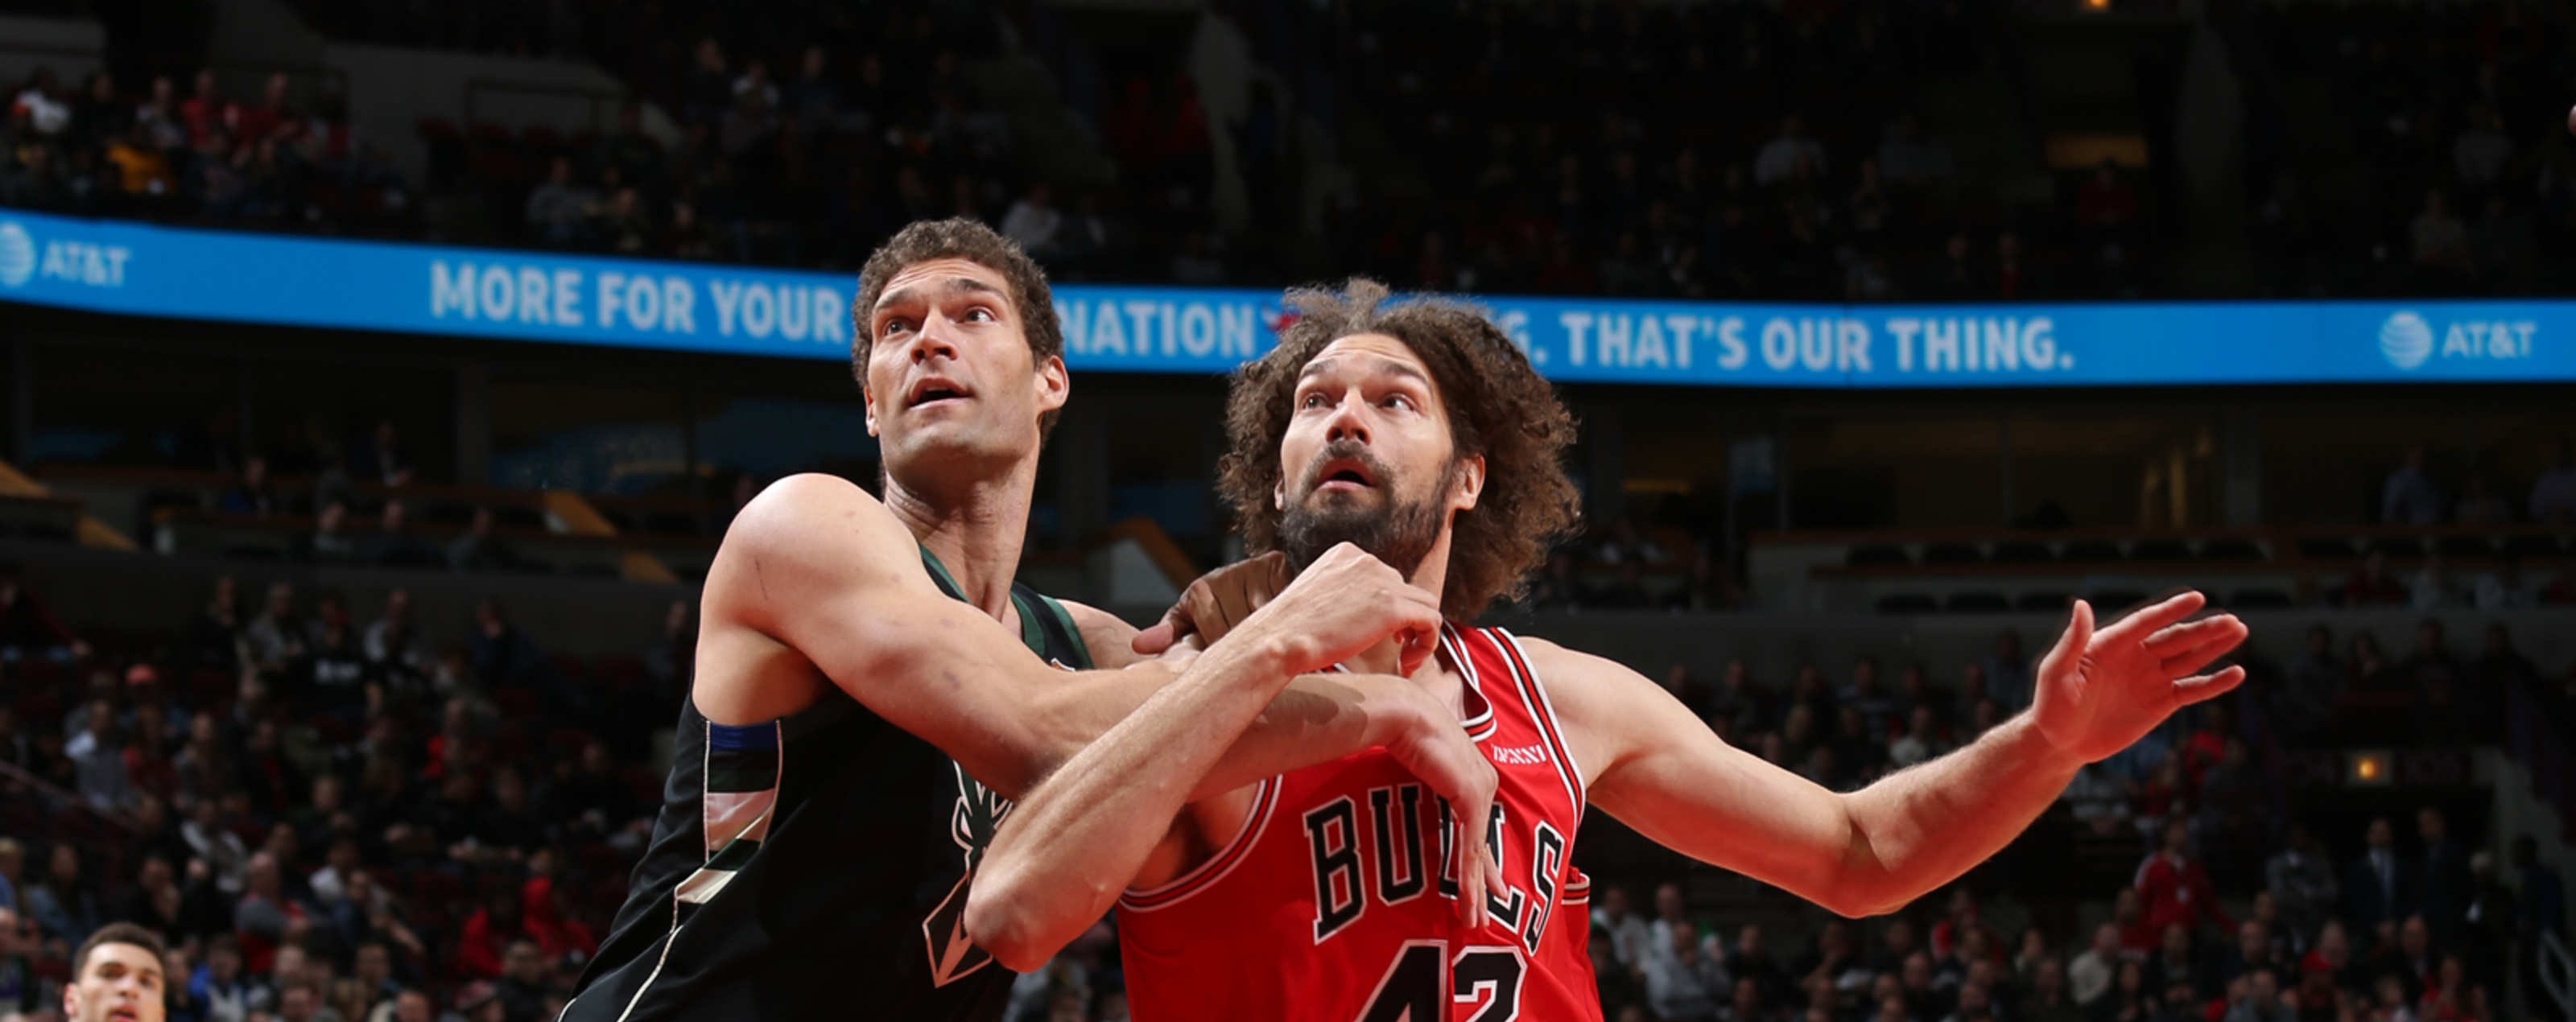 Robin Lopez battles with Brook Lopez for the rebound on February 25, 2019 at the United Center.